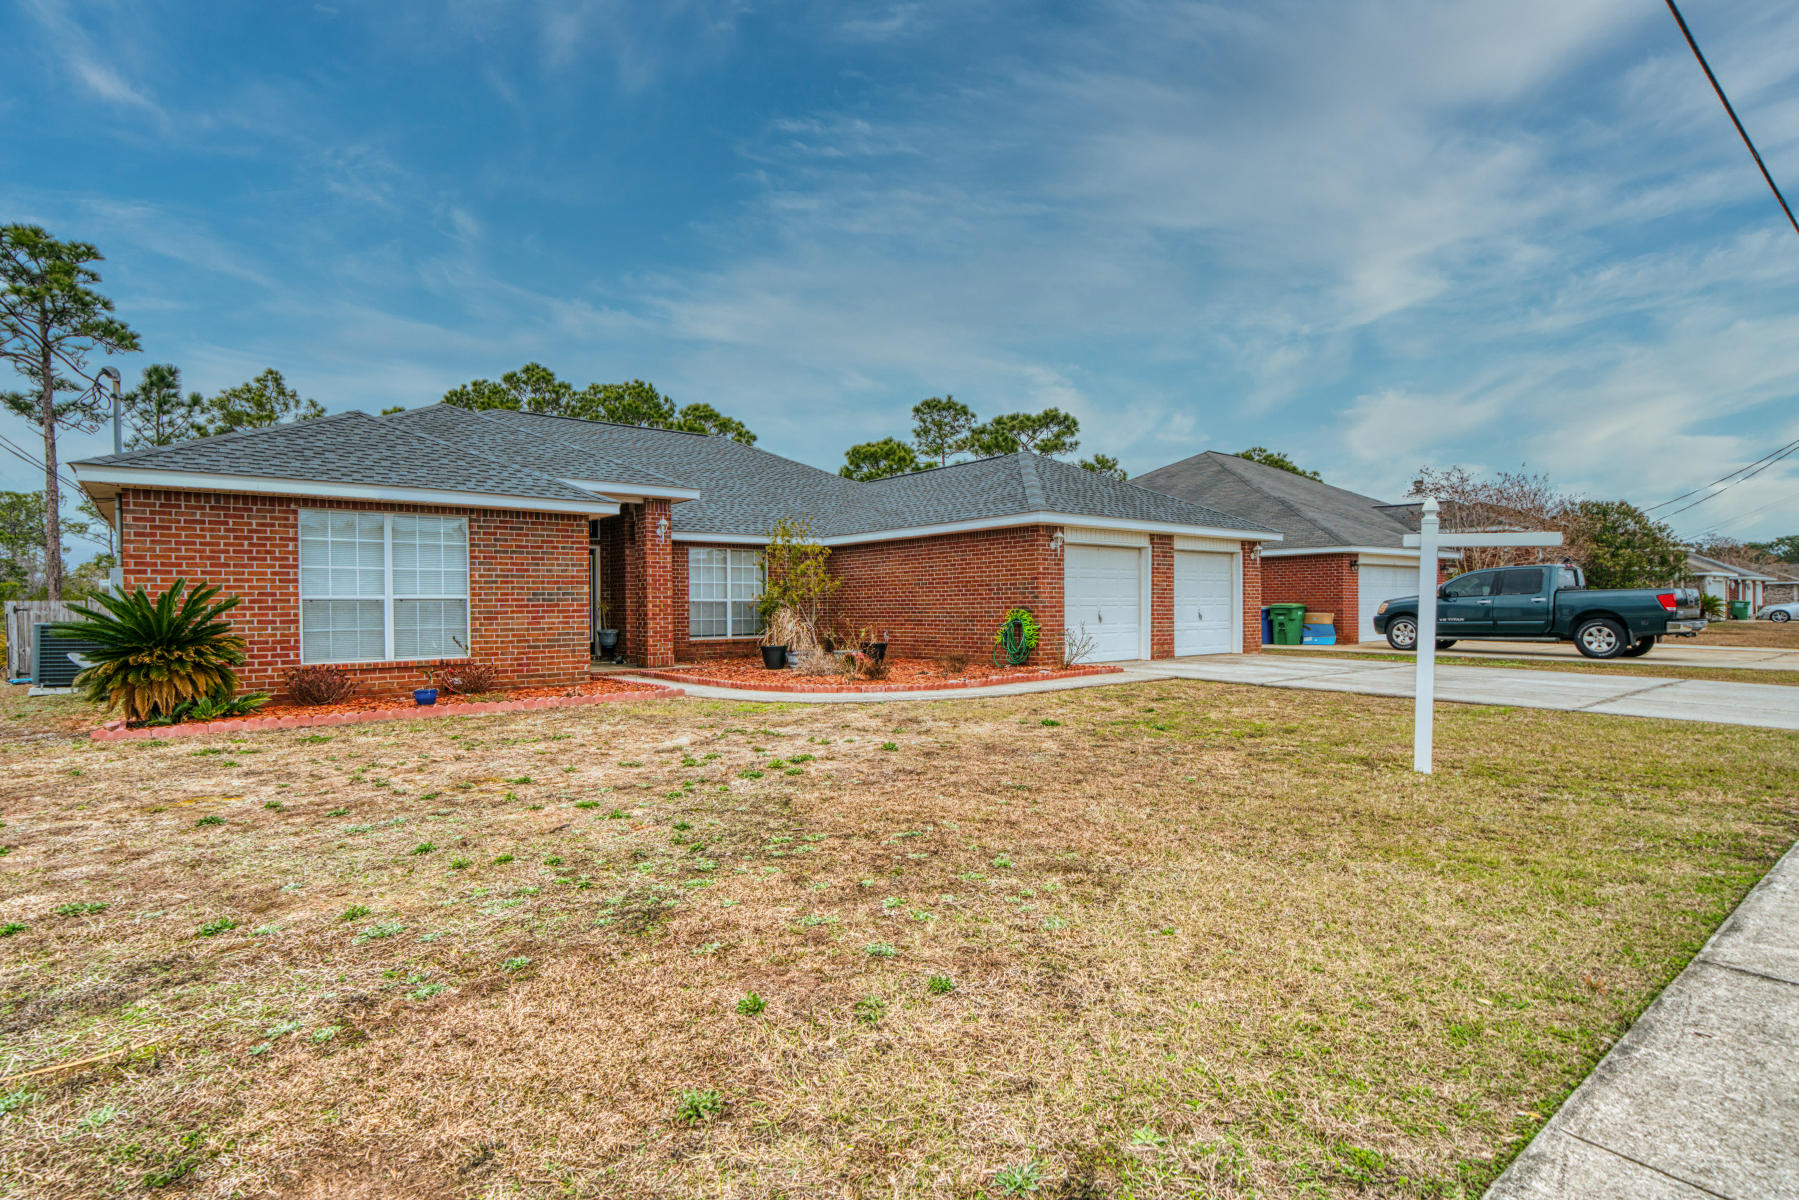 Photo of home for sale at 8252 Cosica, Navarre FL